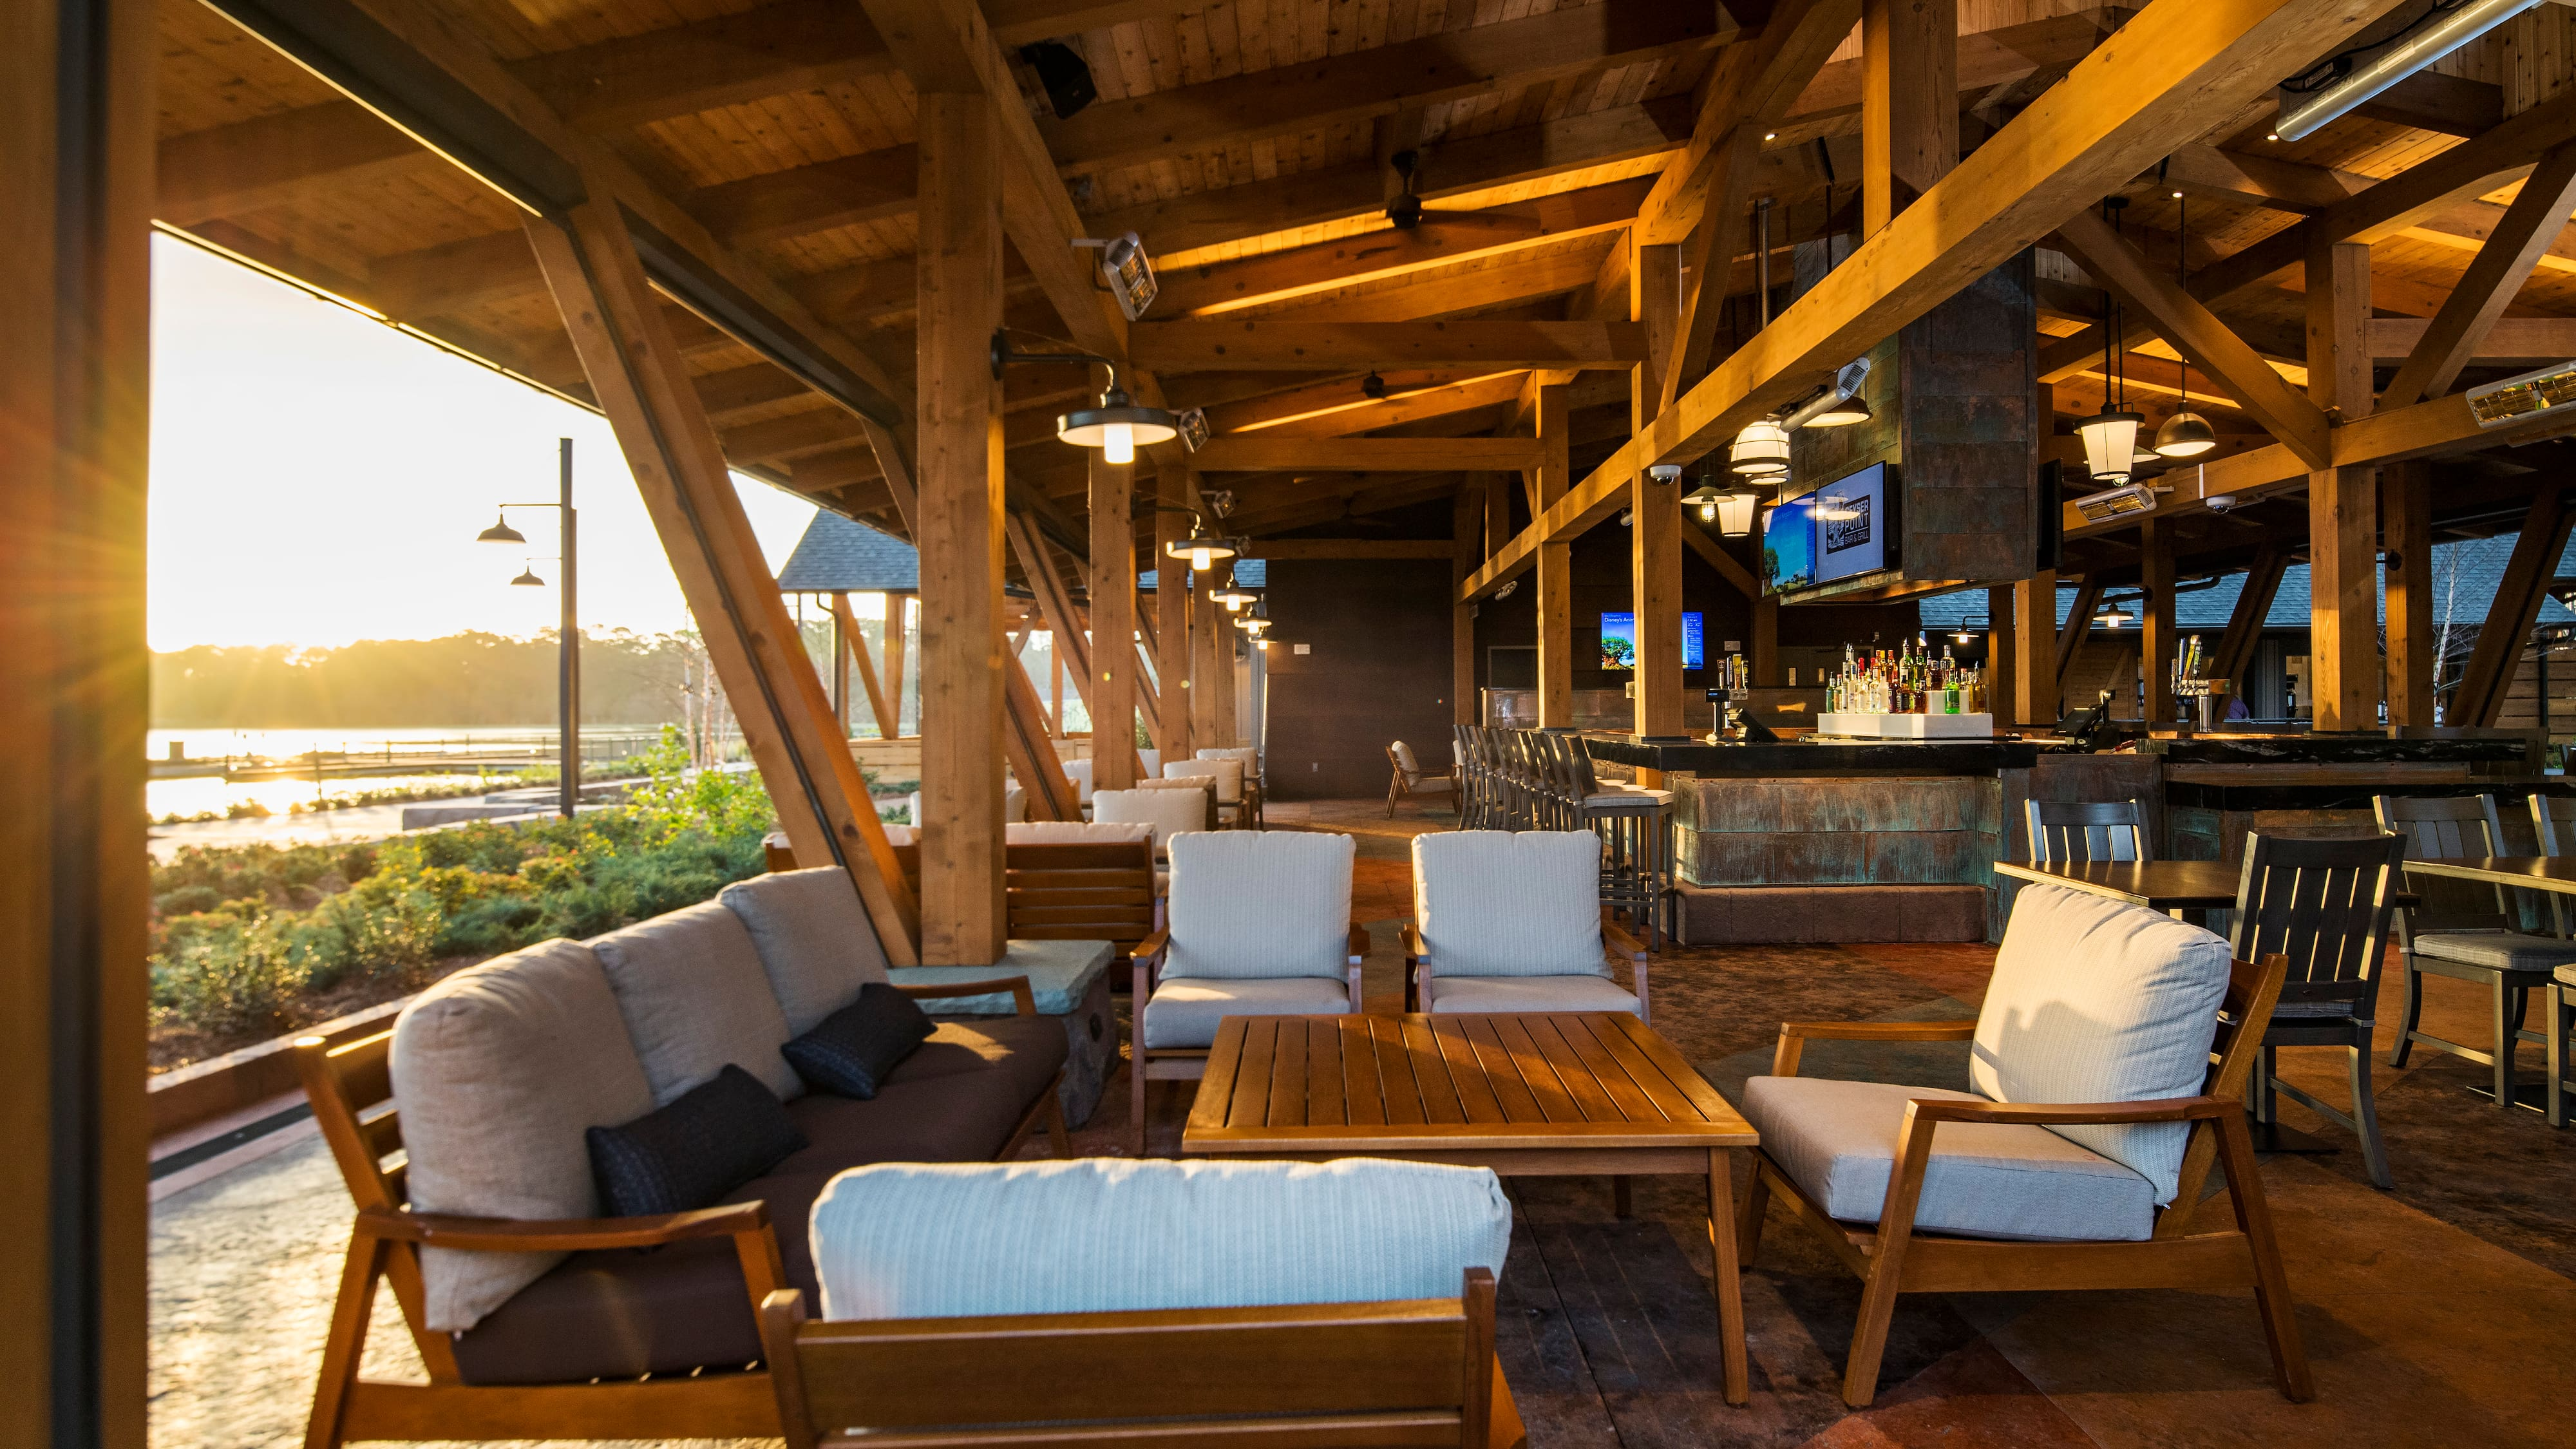 The Geyser Point Bar and Grill dining area with tables and chairs